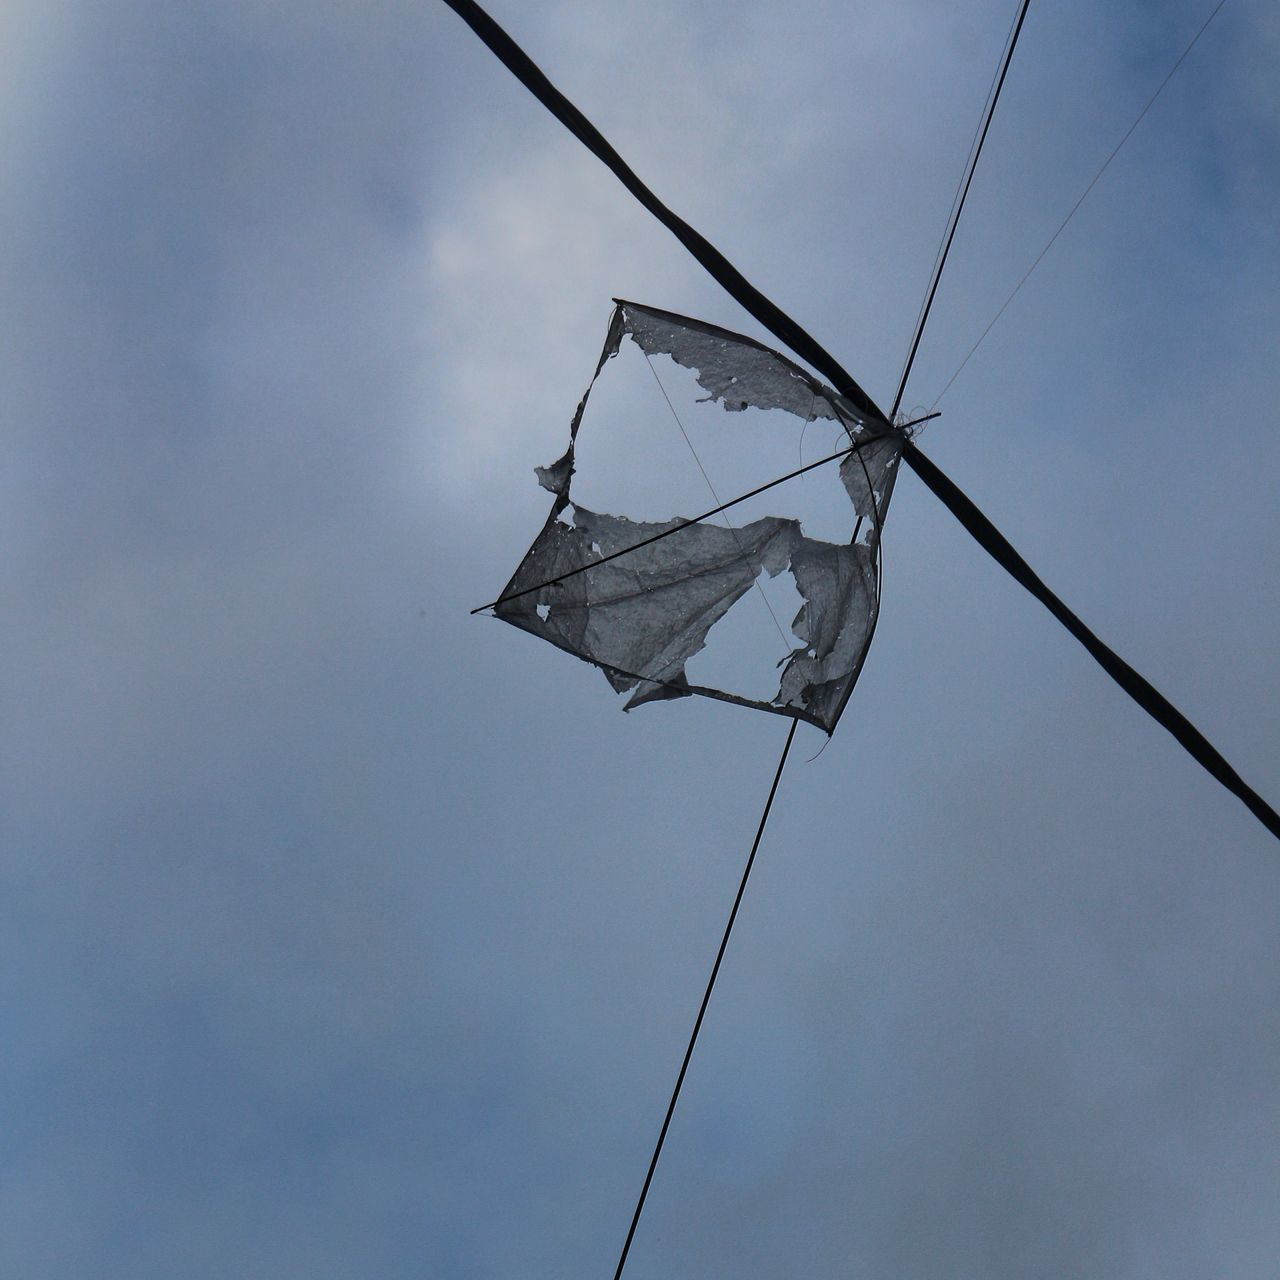 Low Angle View Of Damaged Kite Against Sky